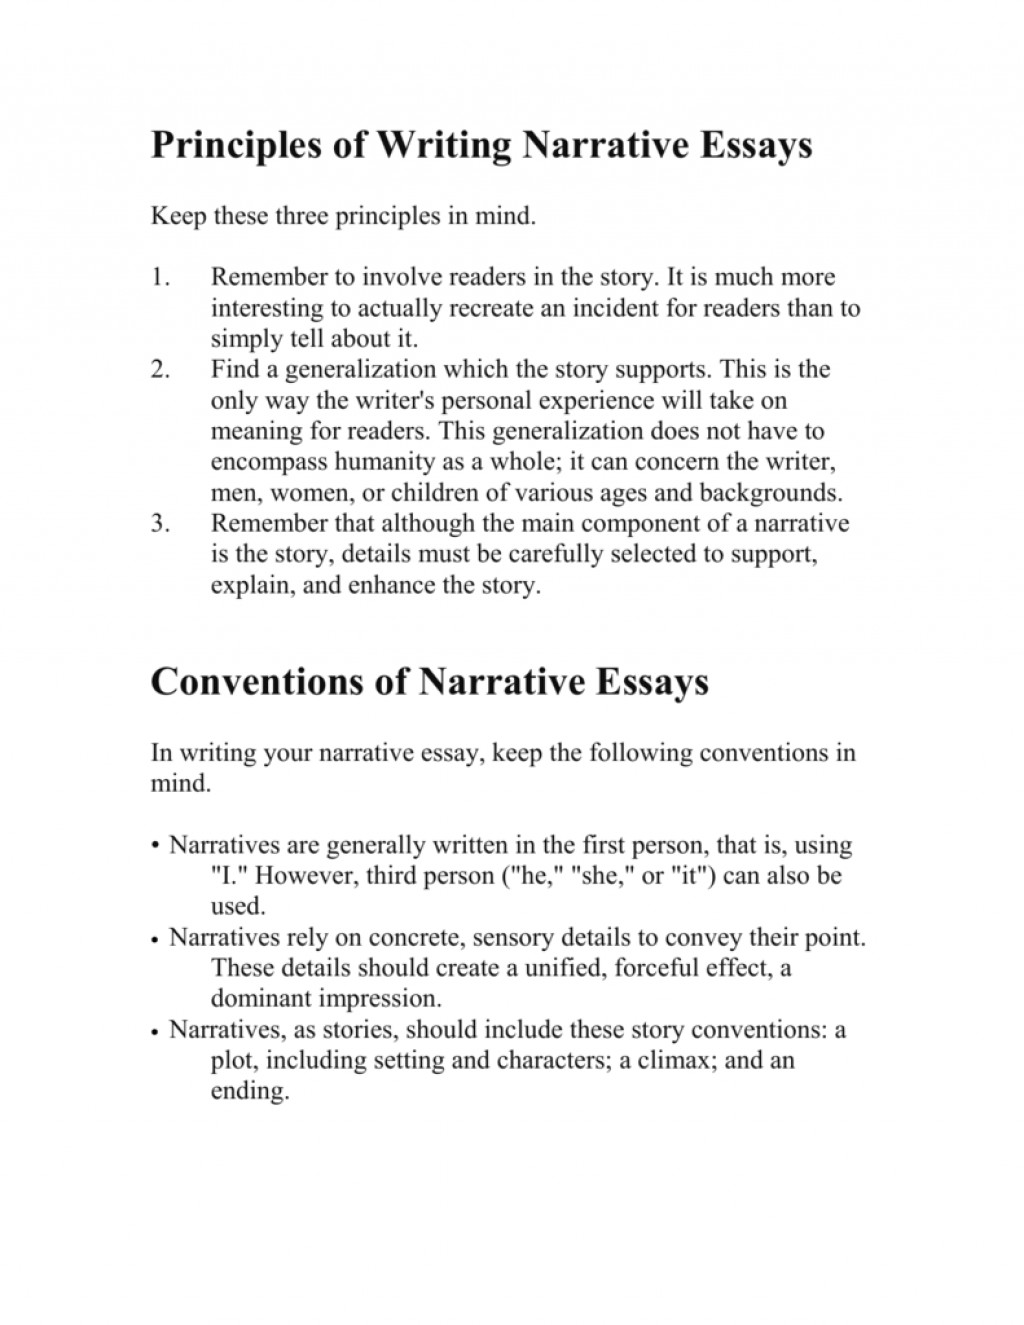 014 007210888 1 Essay Example Writing Amazing A Narrative About Being Judged Quizlet Powerpoint Large